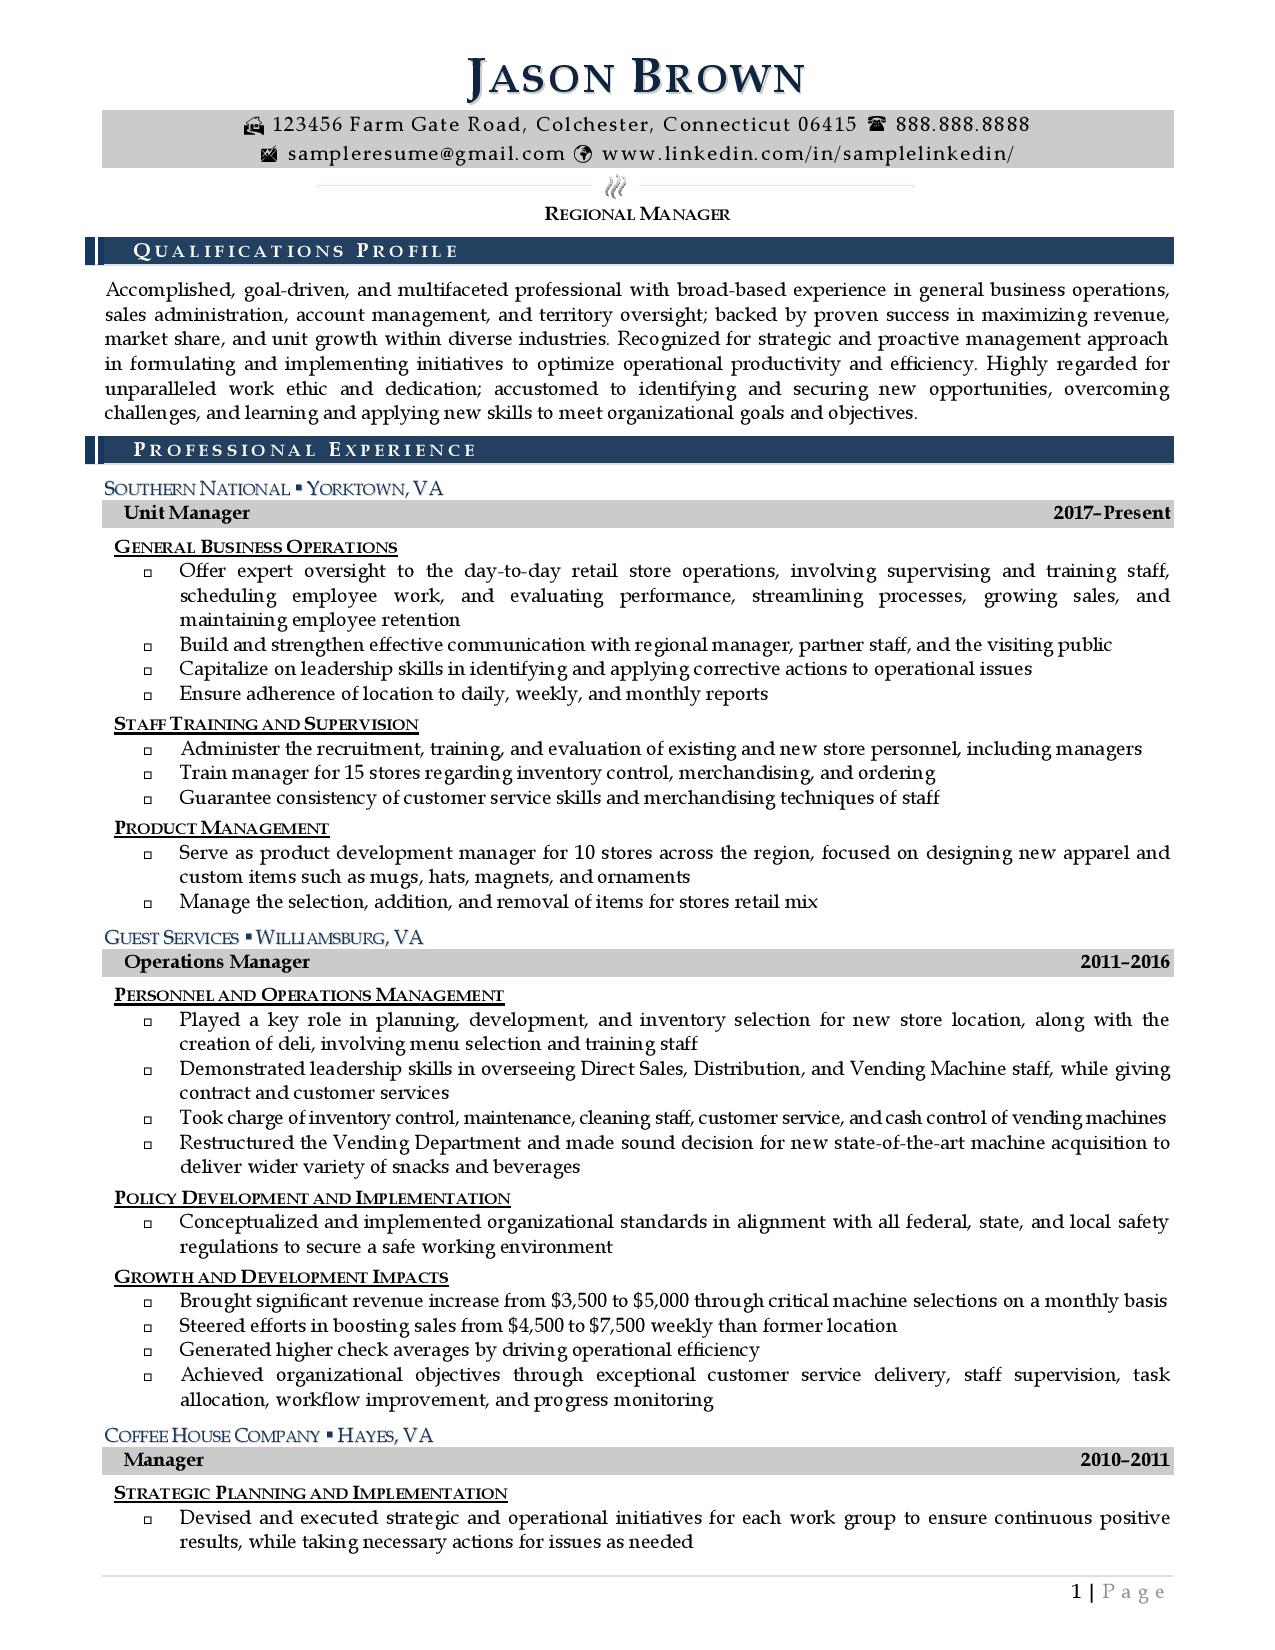 Regional manager resume examples with light color accents page 1